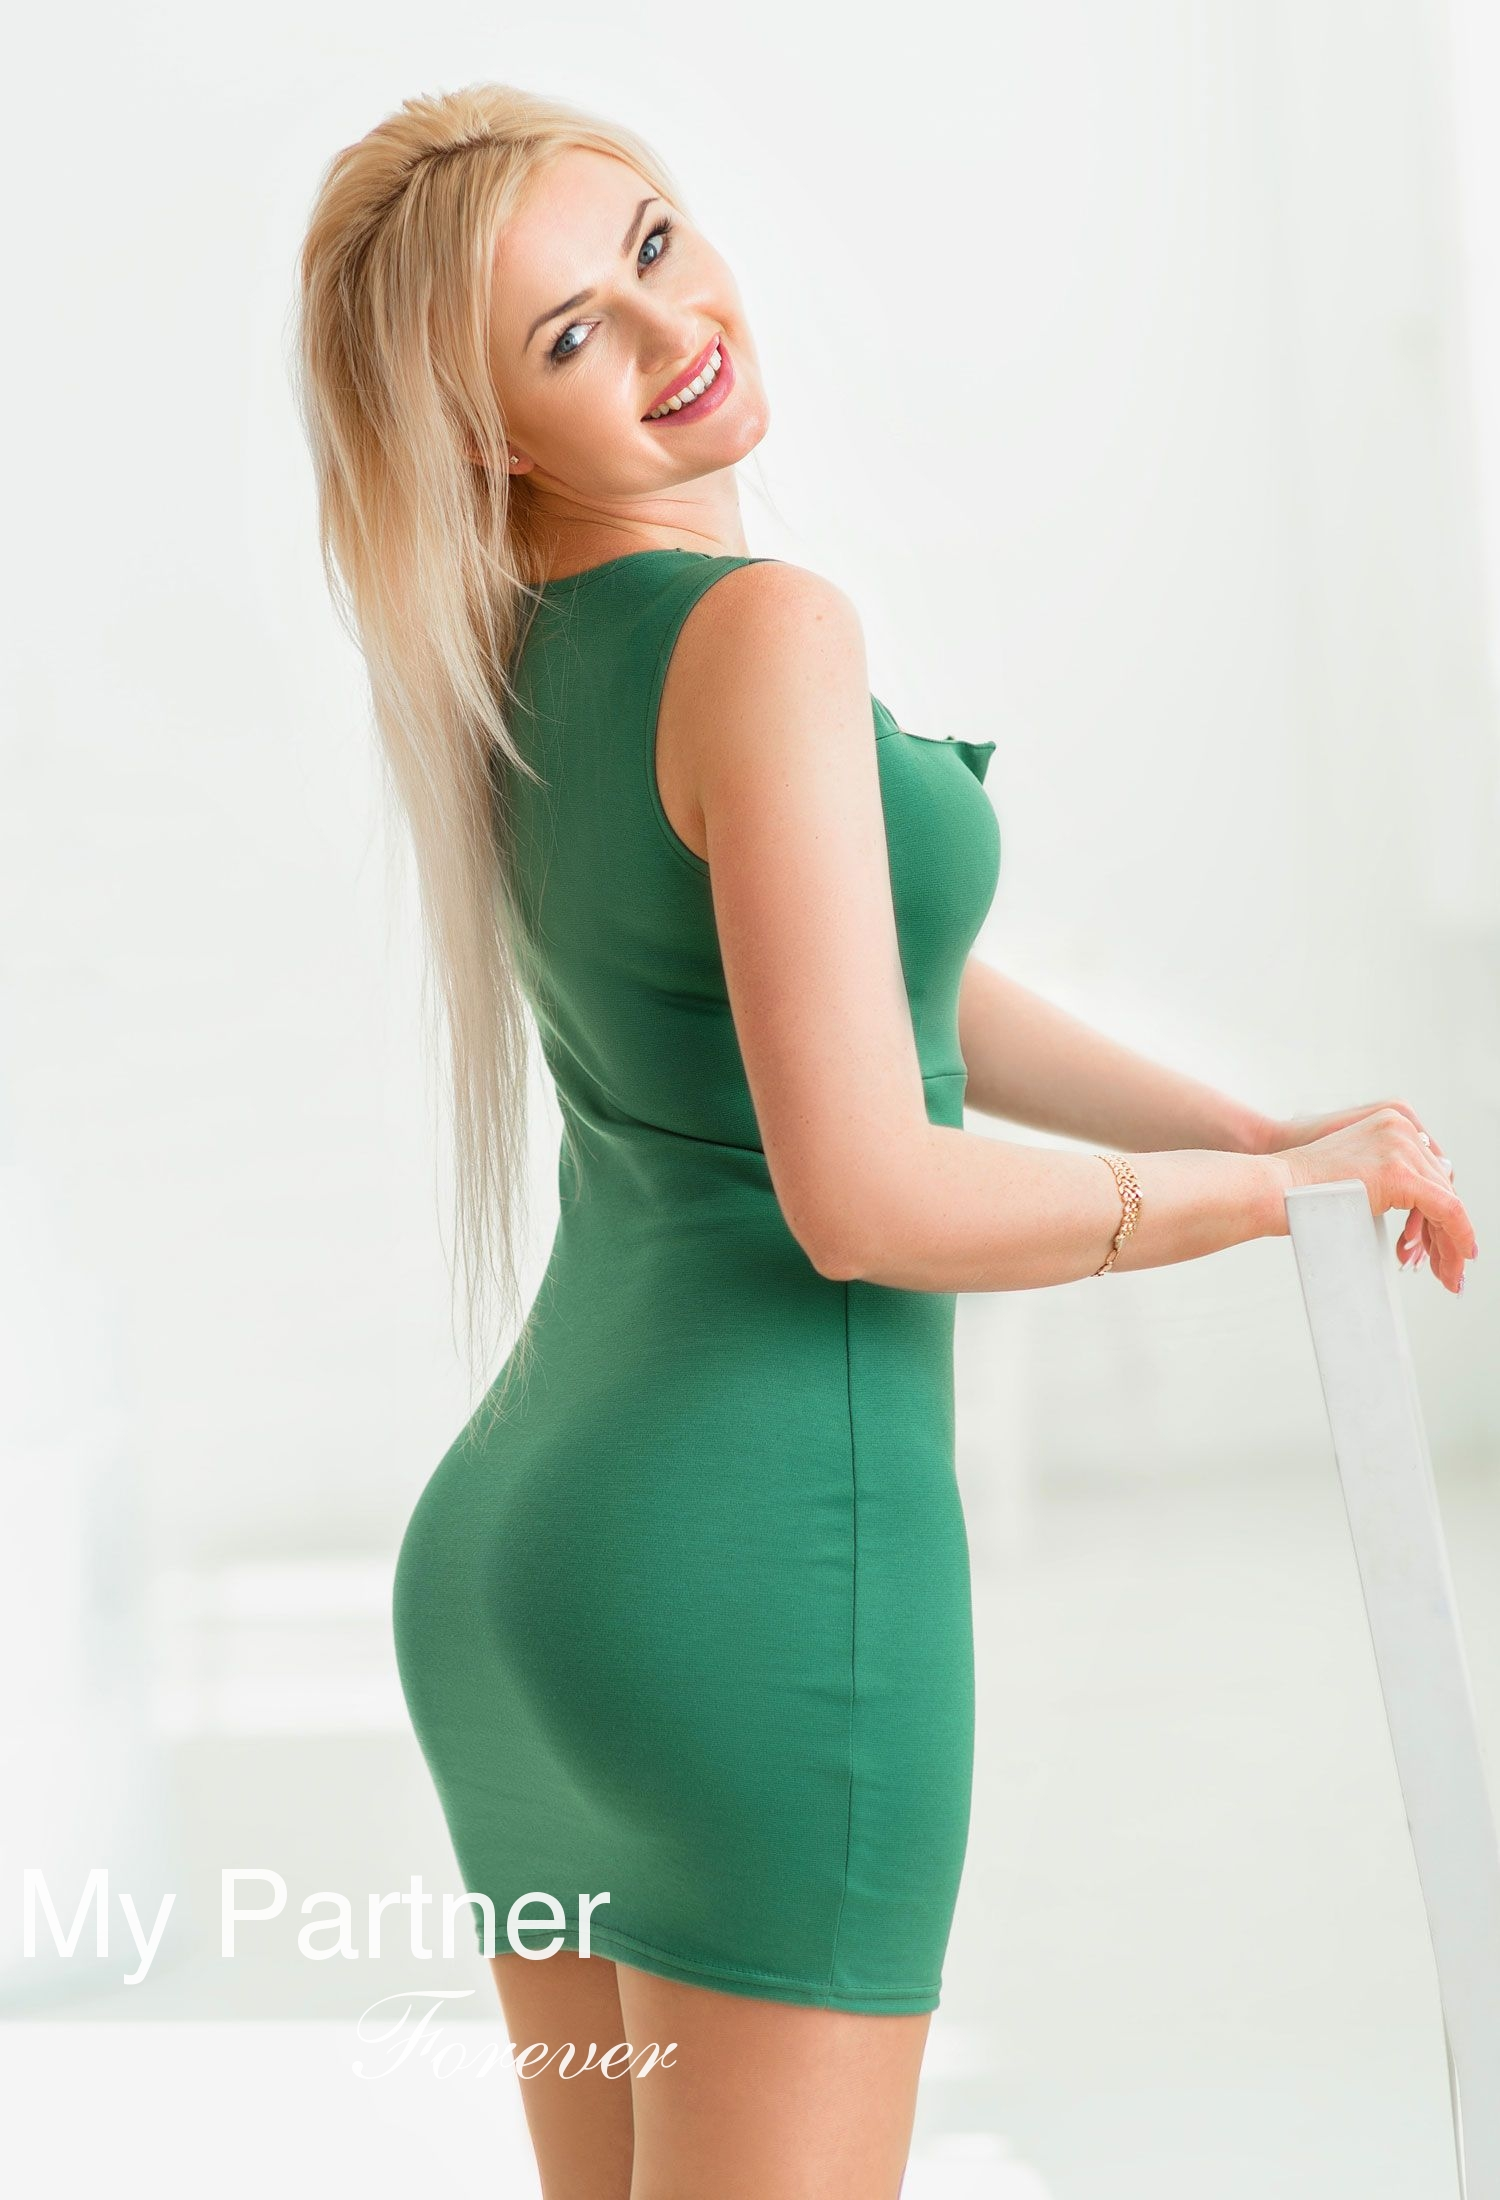 ackermanville divorced singles dating site Meet divorced singles - we are leading online dating site for beautiful women and men date, meet, chat, and create relationships with other people.